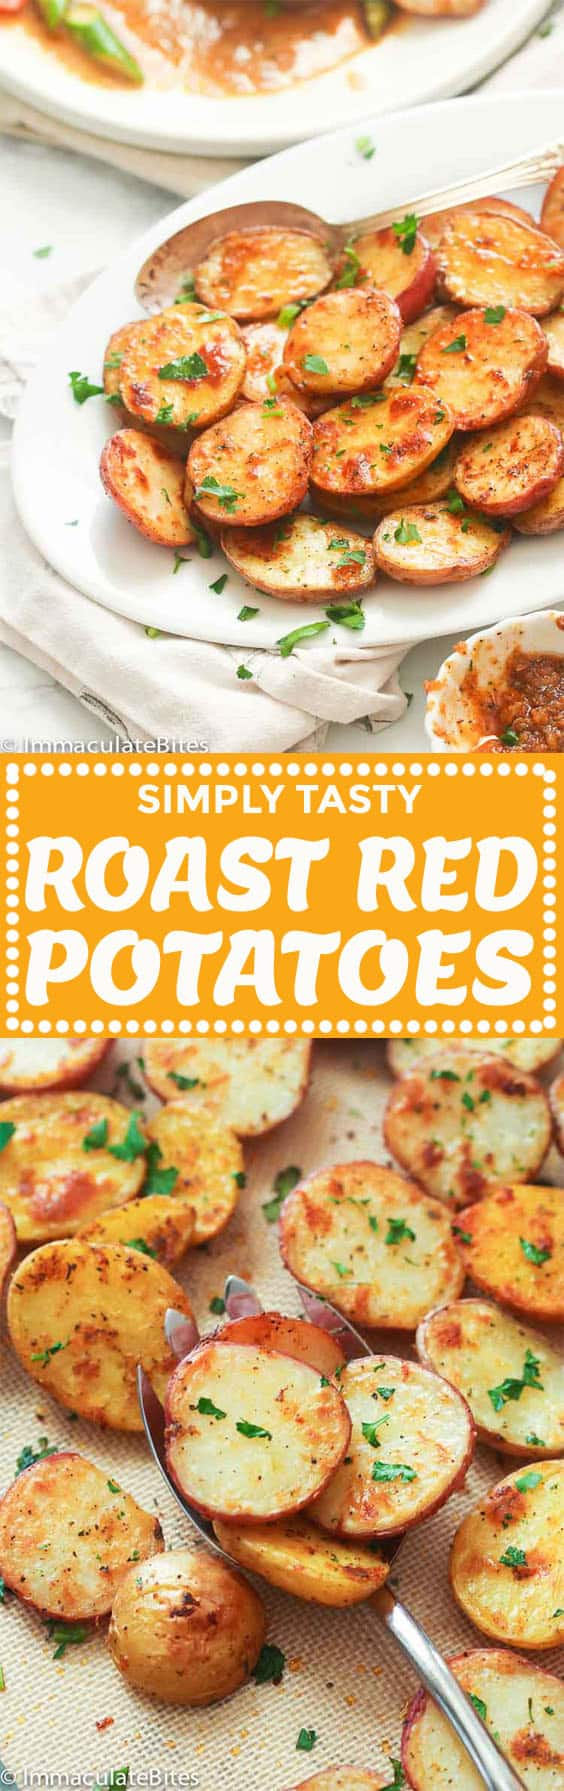 Roast Red Potatoes